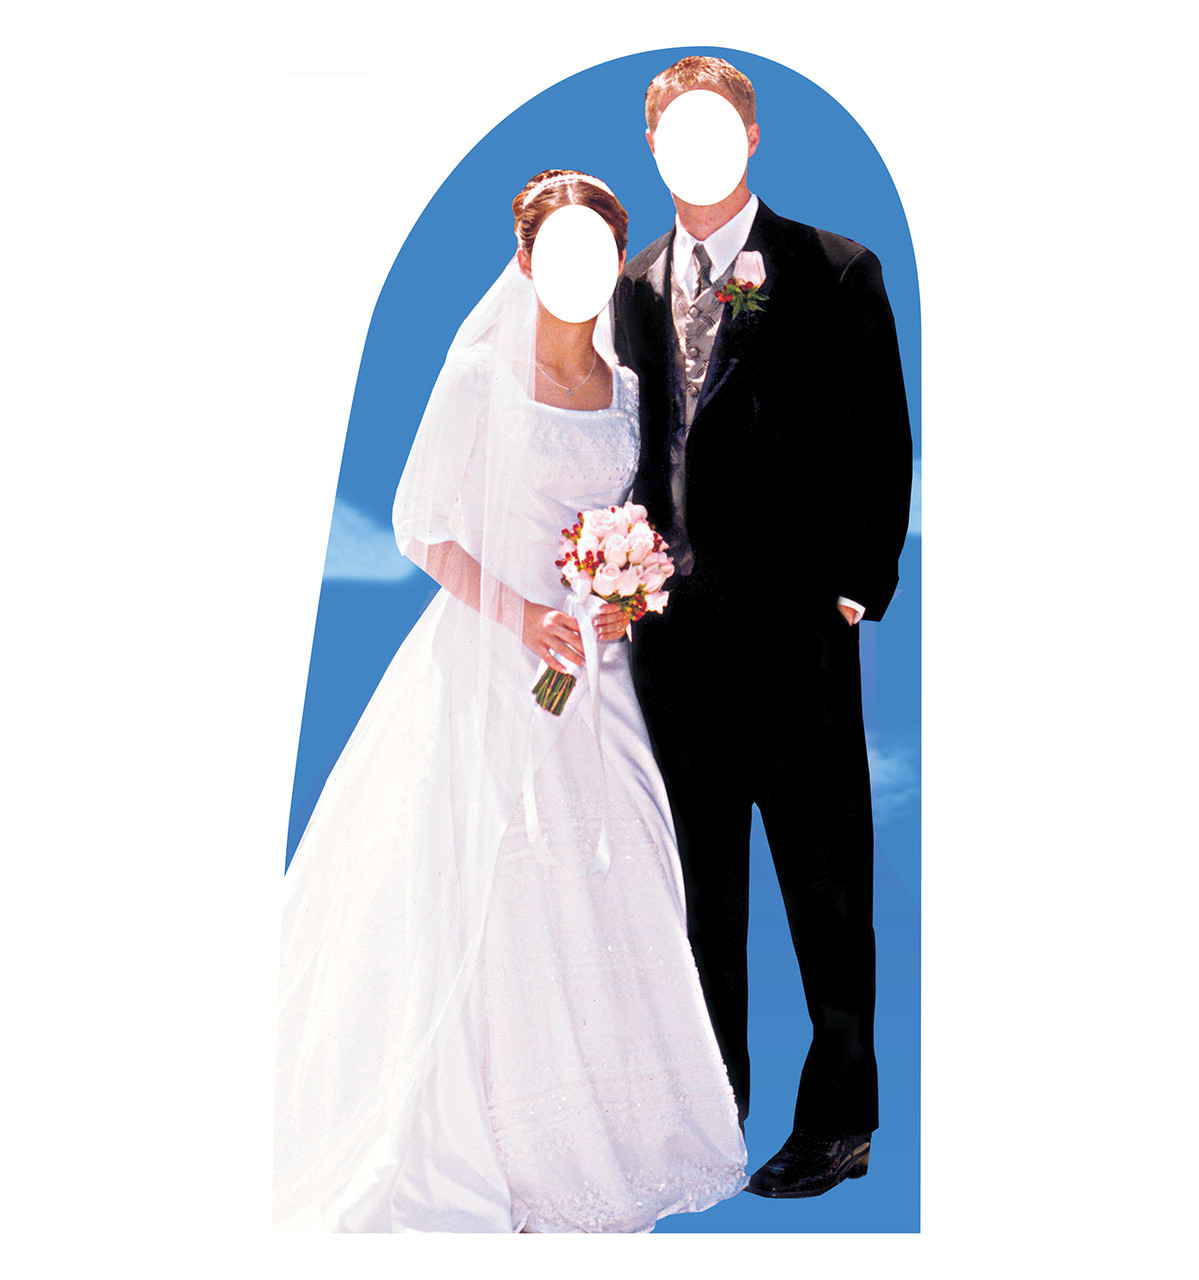 Life-size Bride and Groom Stand-In Cardboard Standup | Cardboard Cutout